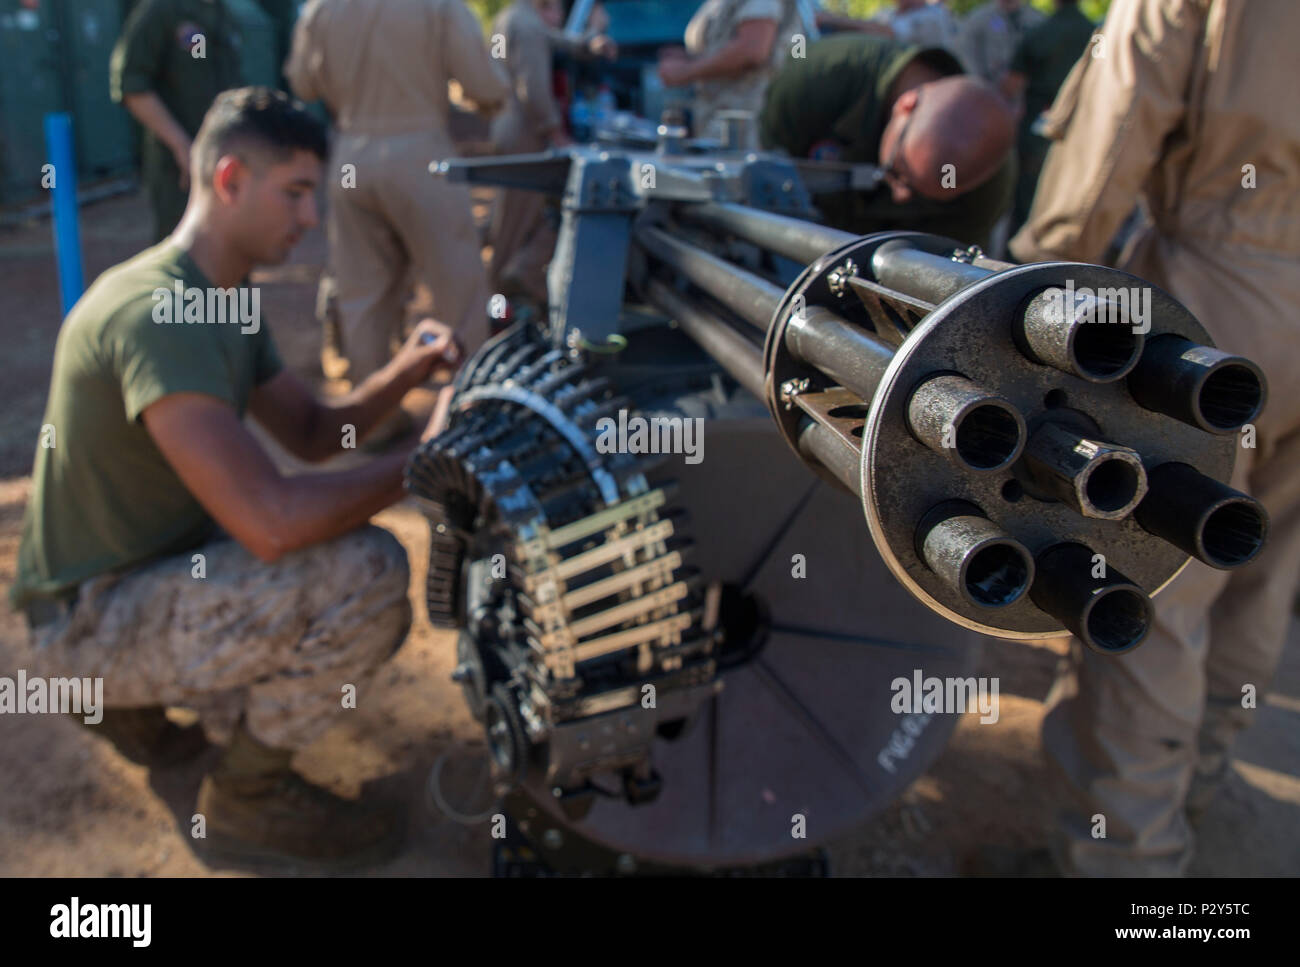 U.S. Marines with Marine Fighter Attack Squadron (VMFA) 122 perform maintenance on an M61A2 20mm Vulcan cannon during Exercise Pitch Black 2016 at Royal Australian Air Force Base Tindal, Australia, Aug. 5, 2016. The lightweight gun is used only in F/A-18s and the six rotating barrels minimize barrel erosion and heat generation, contributing to a long weapon life. Shooting 6,000 rounds per minute, the gun will replace a cannon in one of the squadron's F/A-18C Hornets and will be used for ground targets during Pitch Black. The exercise affords Marines with VMFA-122 the opportunity to integrate a - Stock Image